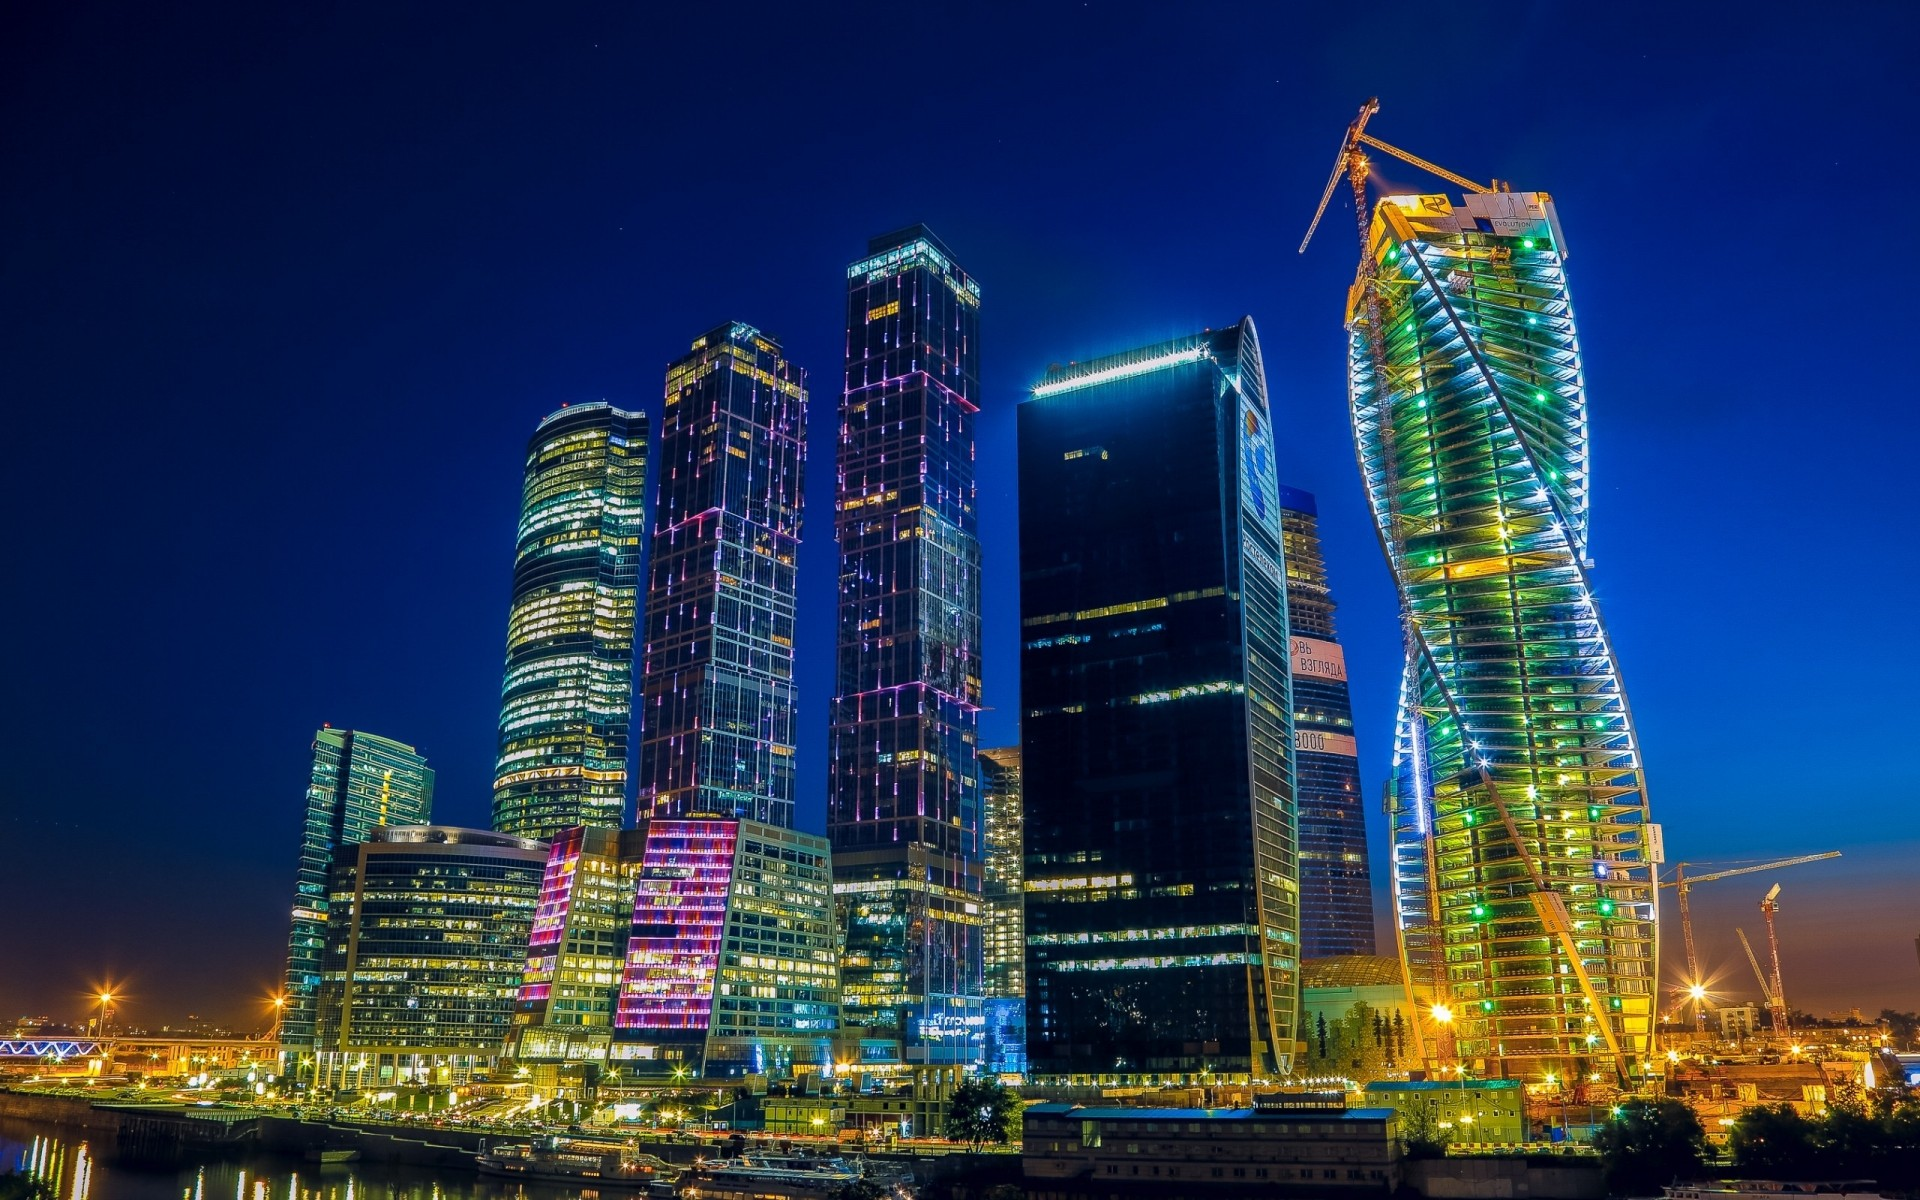 russia city architecture skyscraper building cityscape downtown skyline modern dusk office urban evening sky tower business illuminated tall travel landmark finance moscow river buildings night lights